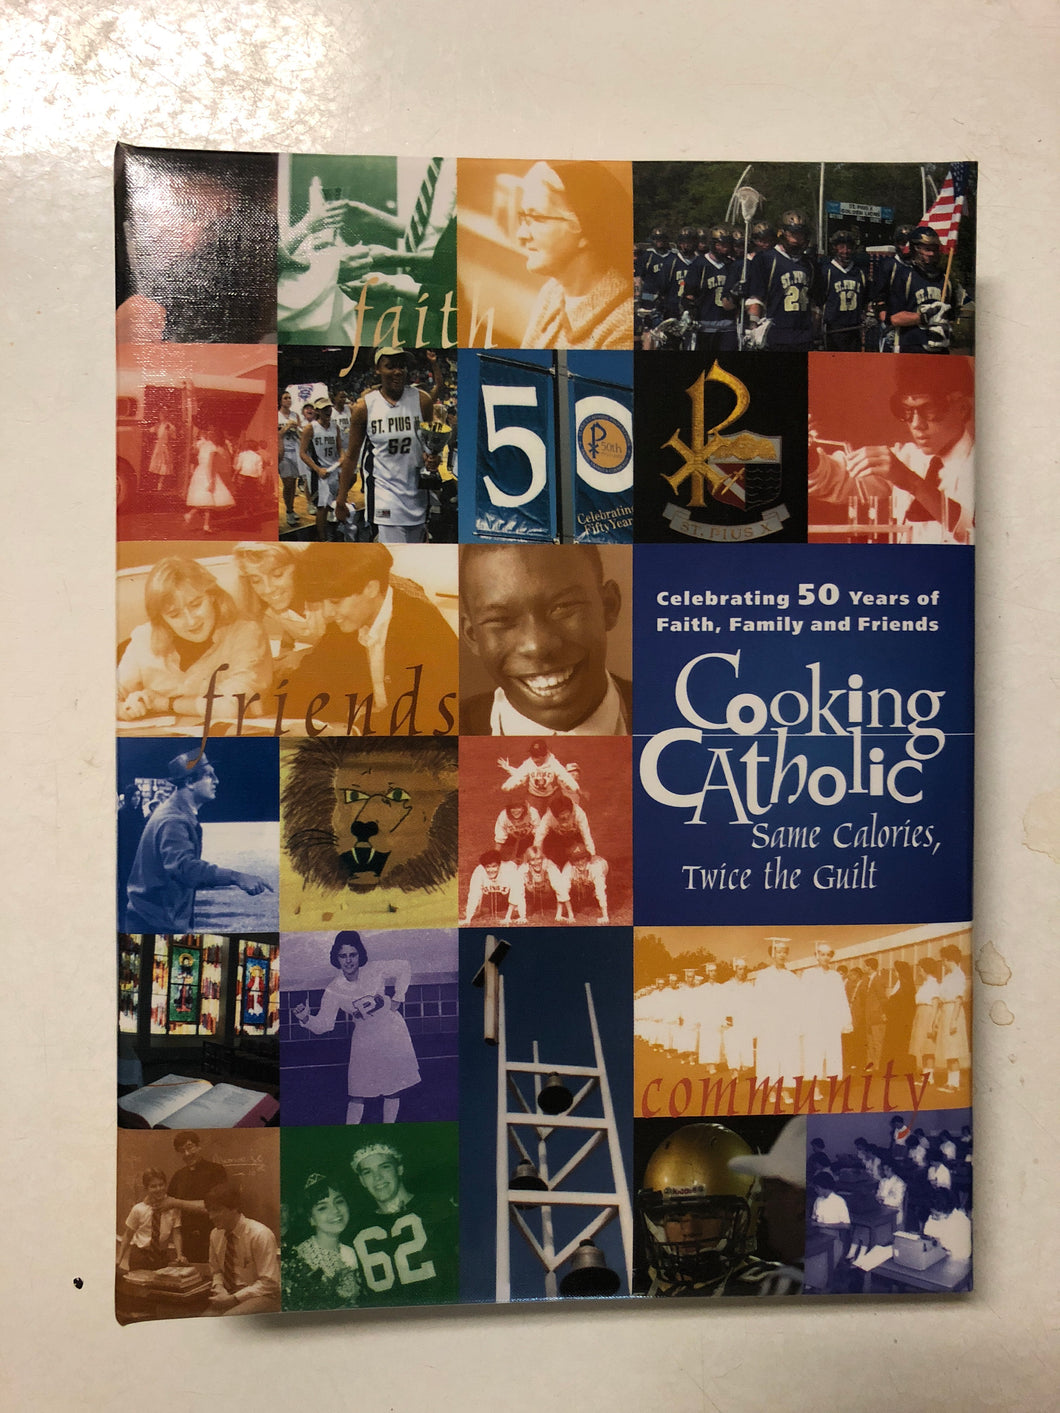 Cooking Catholic Same Calories, Twice the Guilt - Slick Cat Books